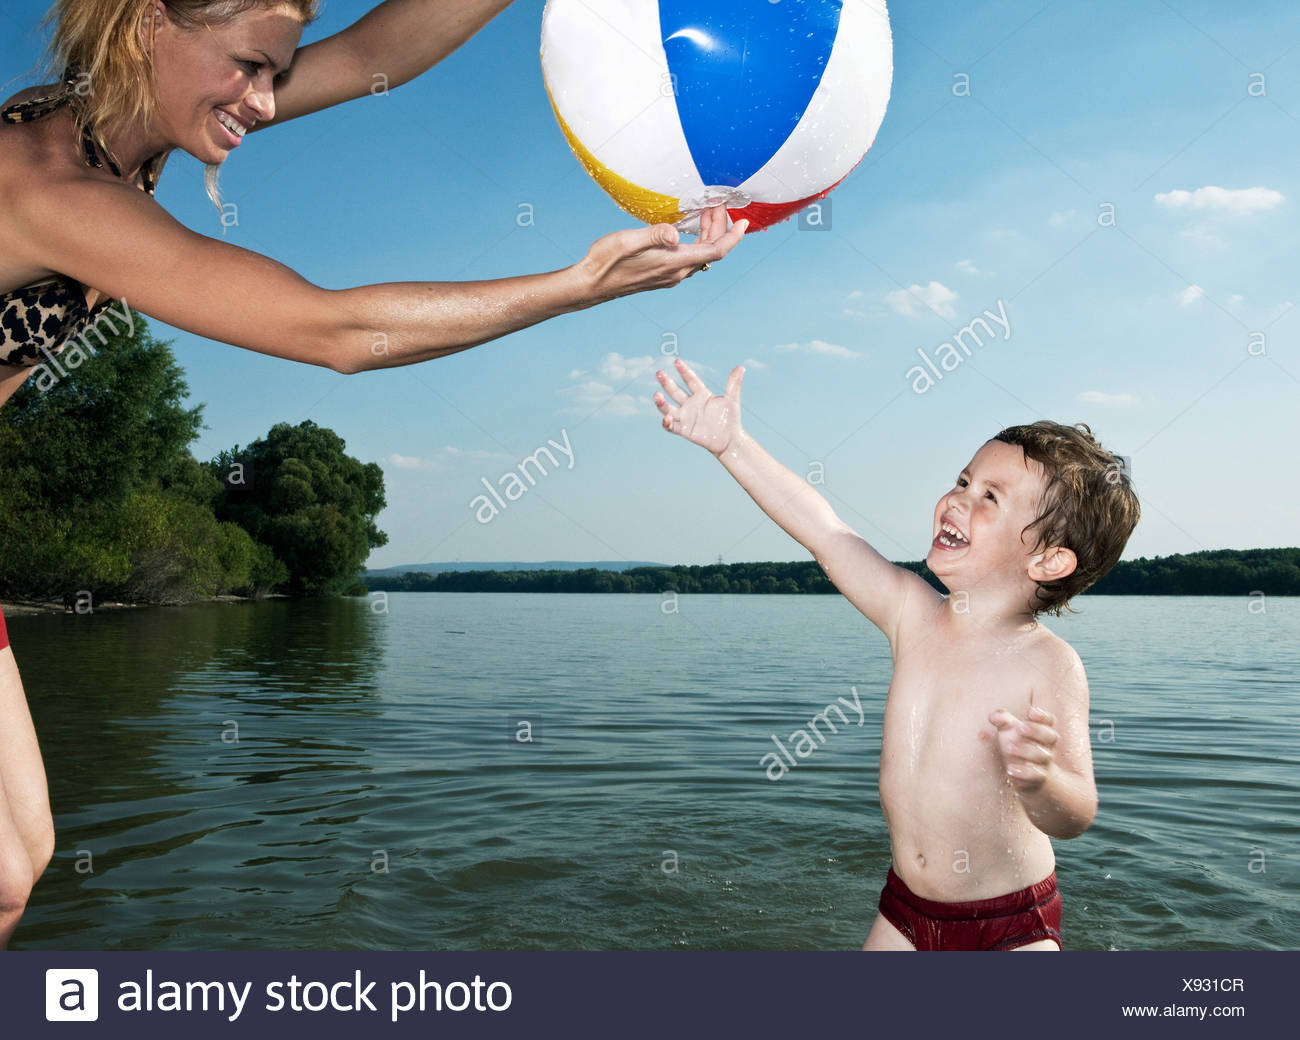 child trying to get ball - Stock Image